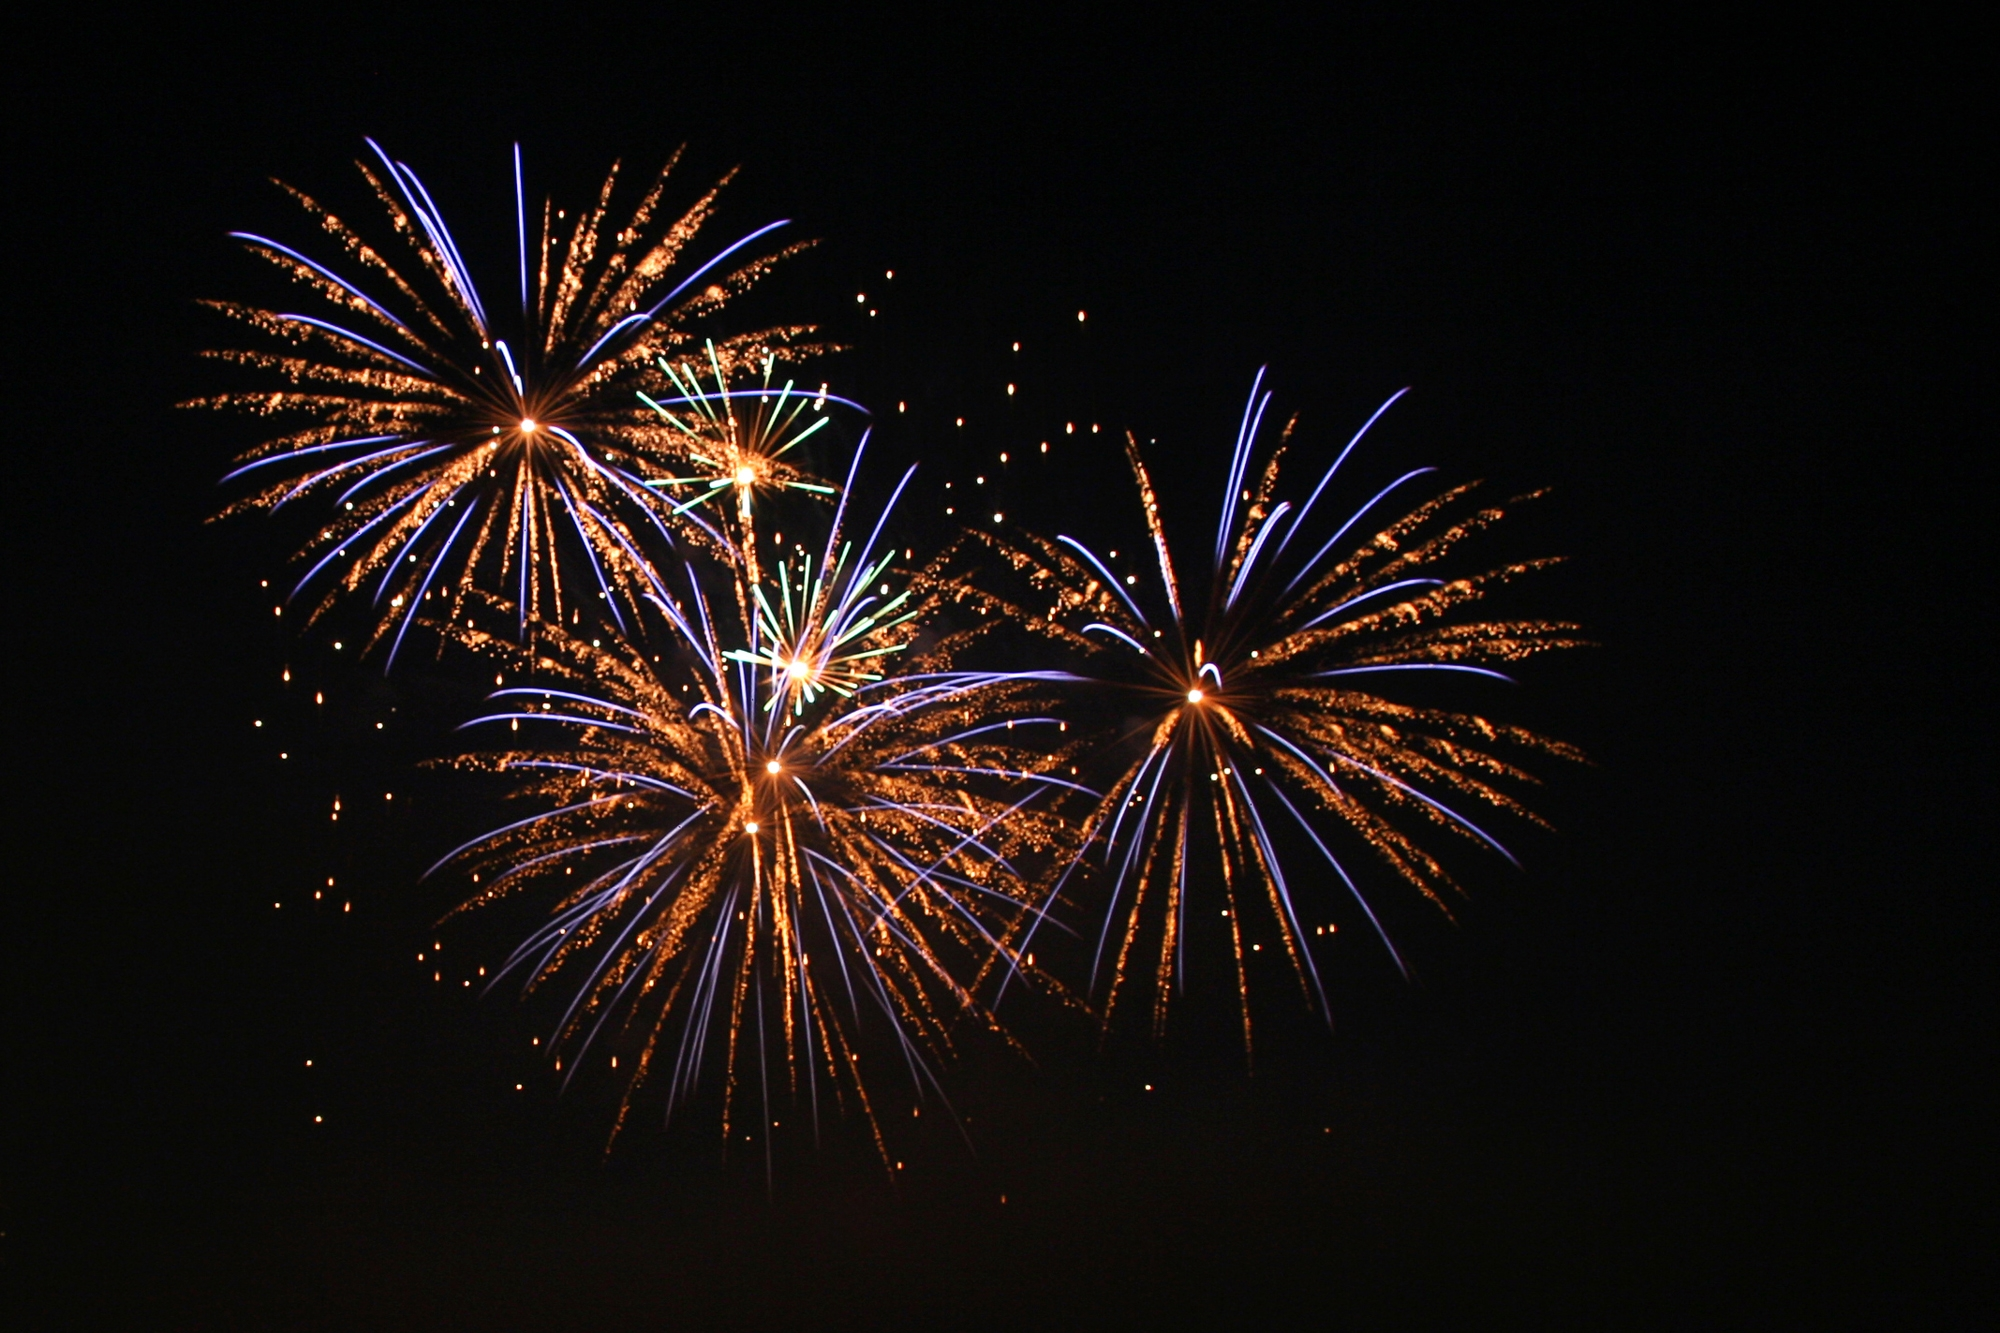 Summer's heating up! Here's your guide to Amarillo's biggest events of the season